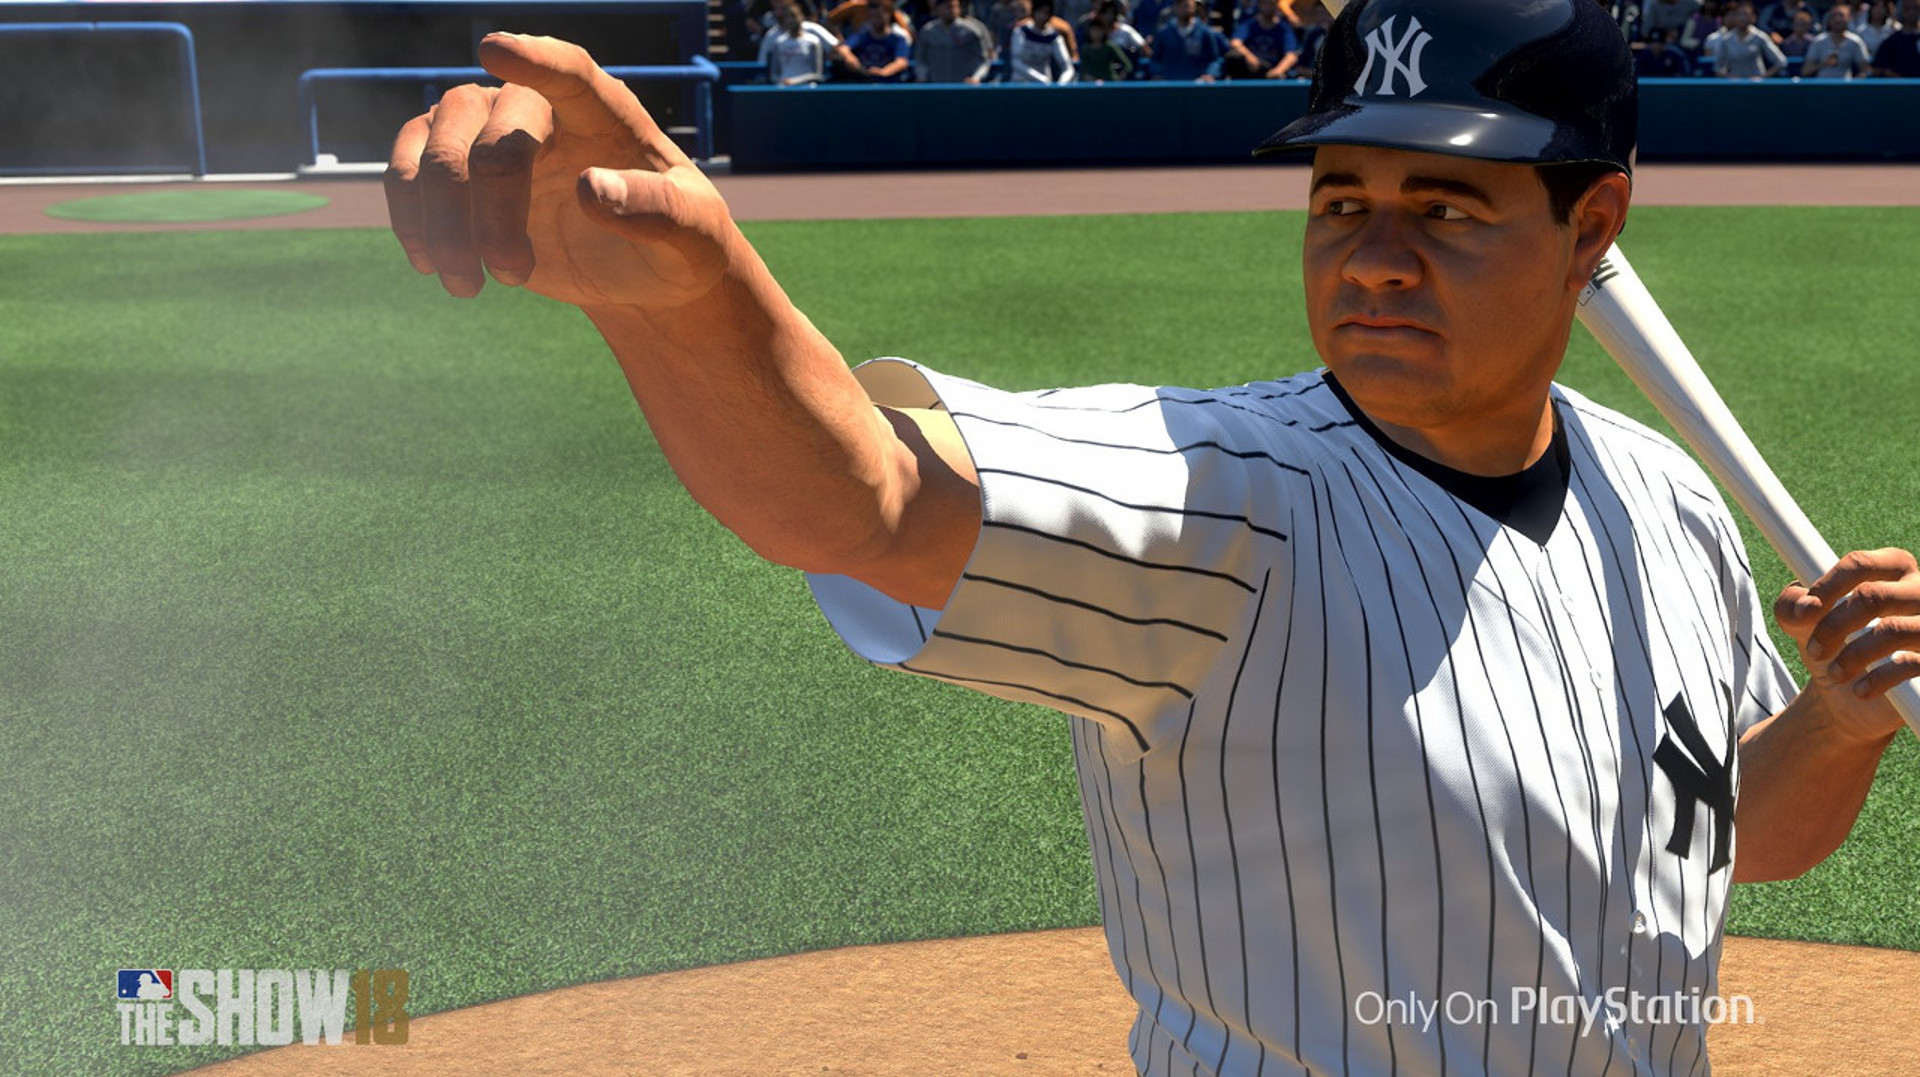 MLB The Show releases official trailer for 2018 version